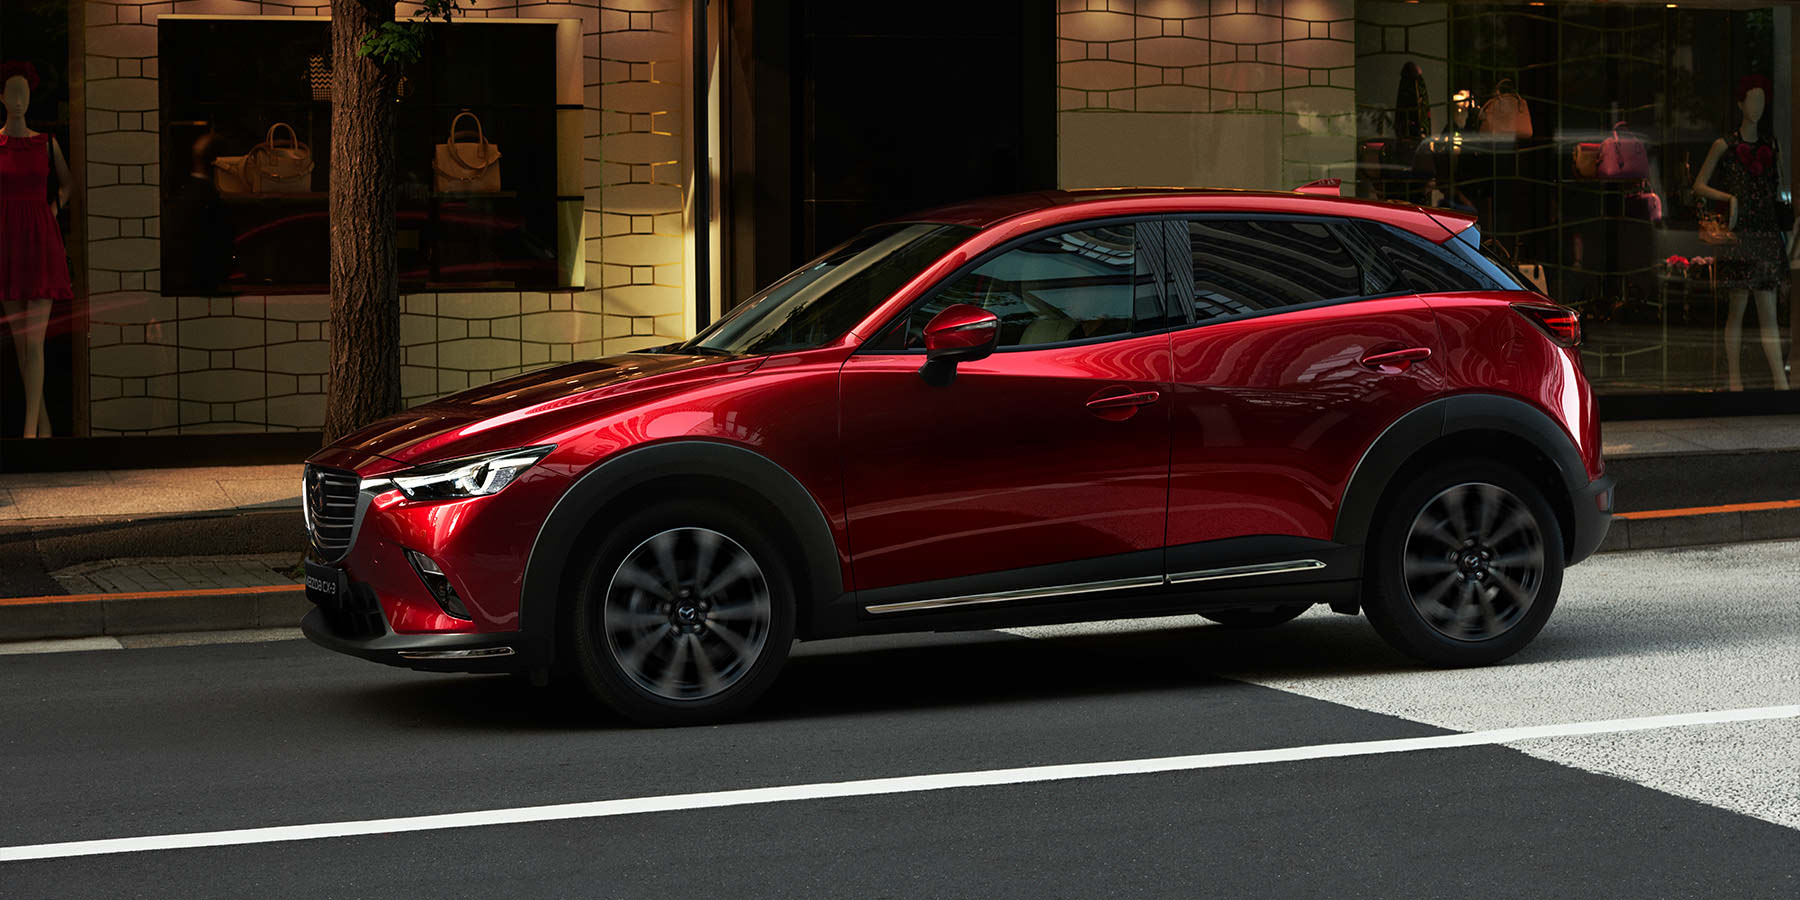 der mazda cx-3 im attraktiven business-angebot